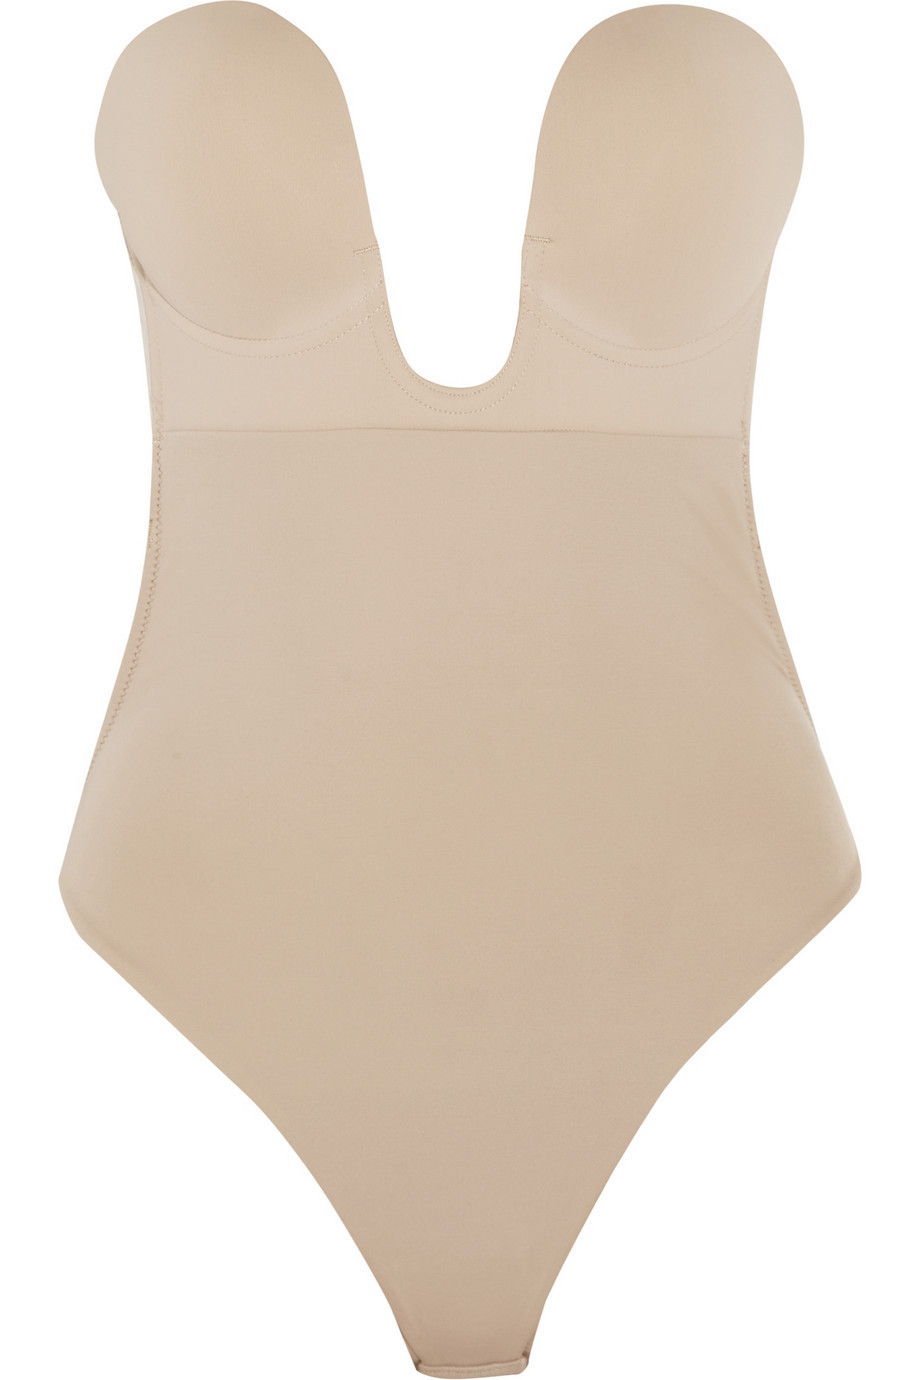 Fashion Forms U-Plunge Self-Adhesive Backless Bodysuit in neutral